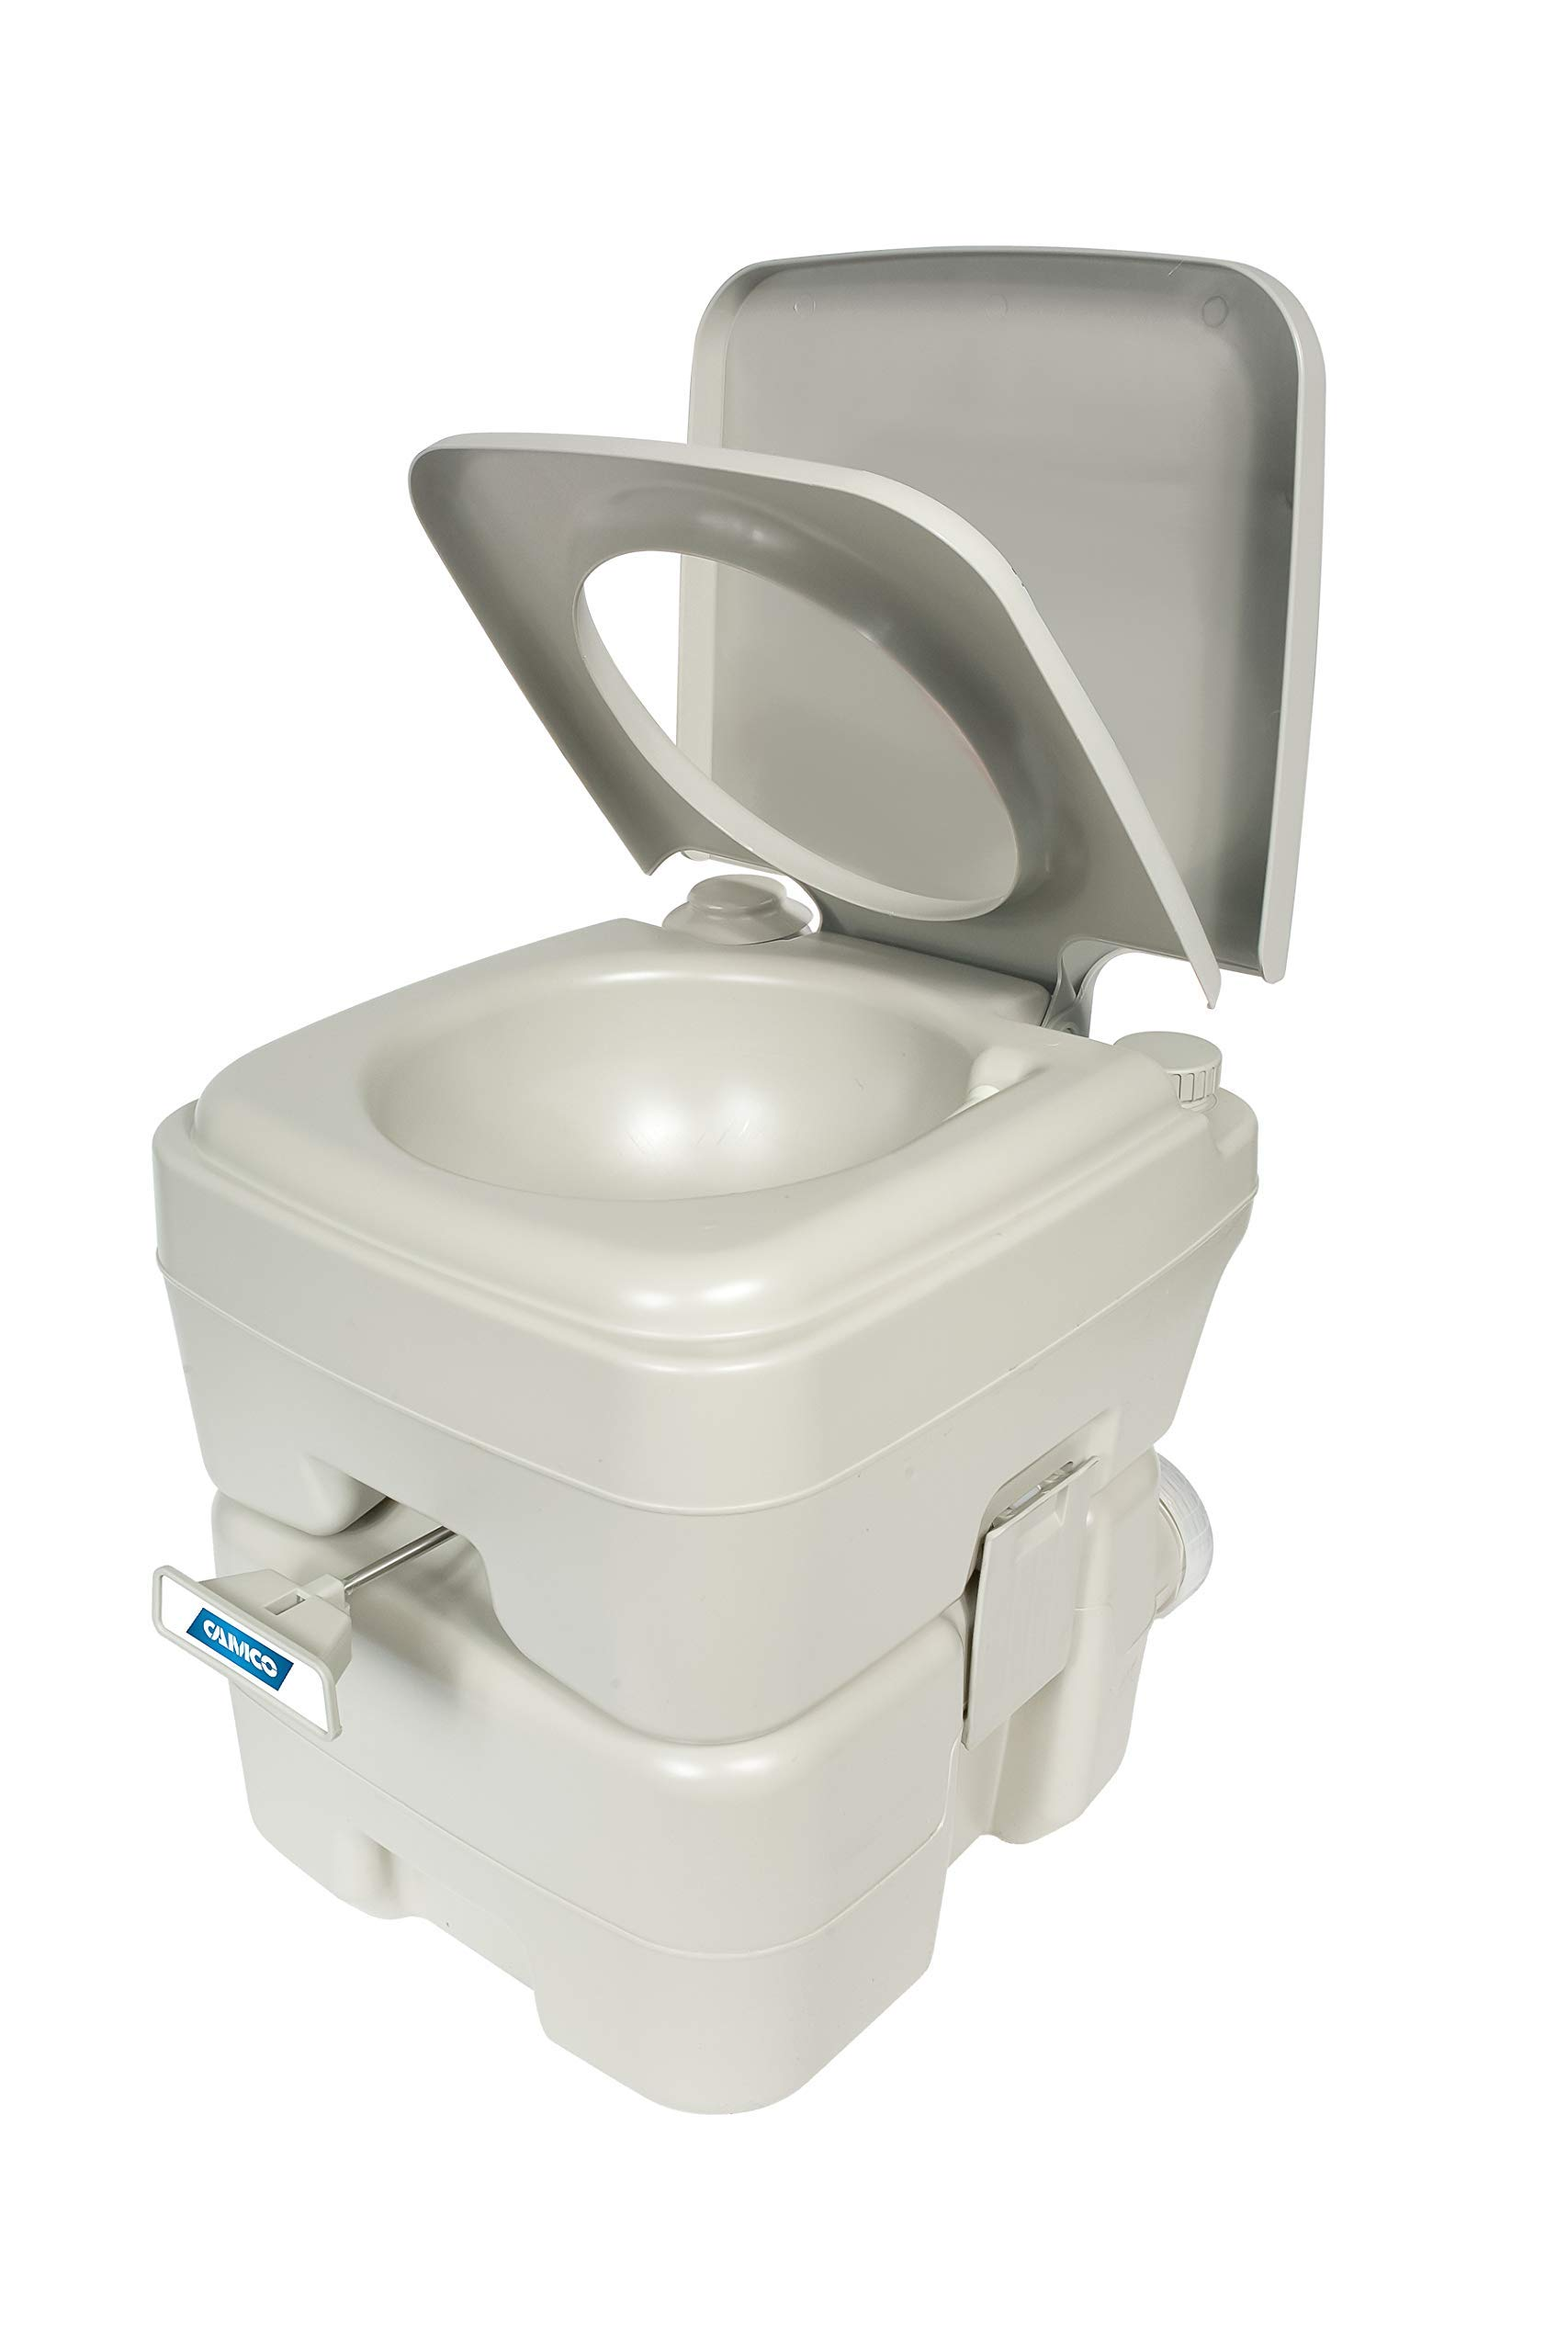 Camco Portable Travel Toilet-Designed for Camping, RV, Boating and Other Recreational Activities-5.3 Gallon (41541) (Renewed) by Camco